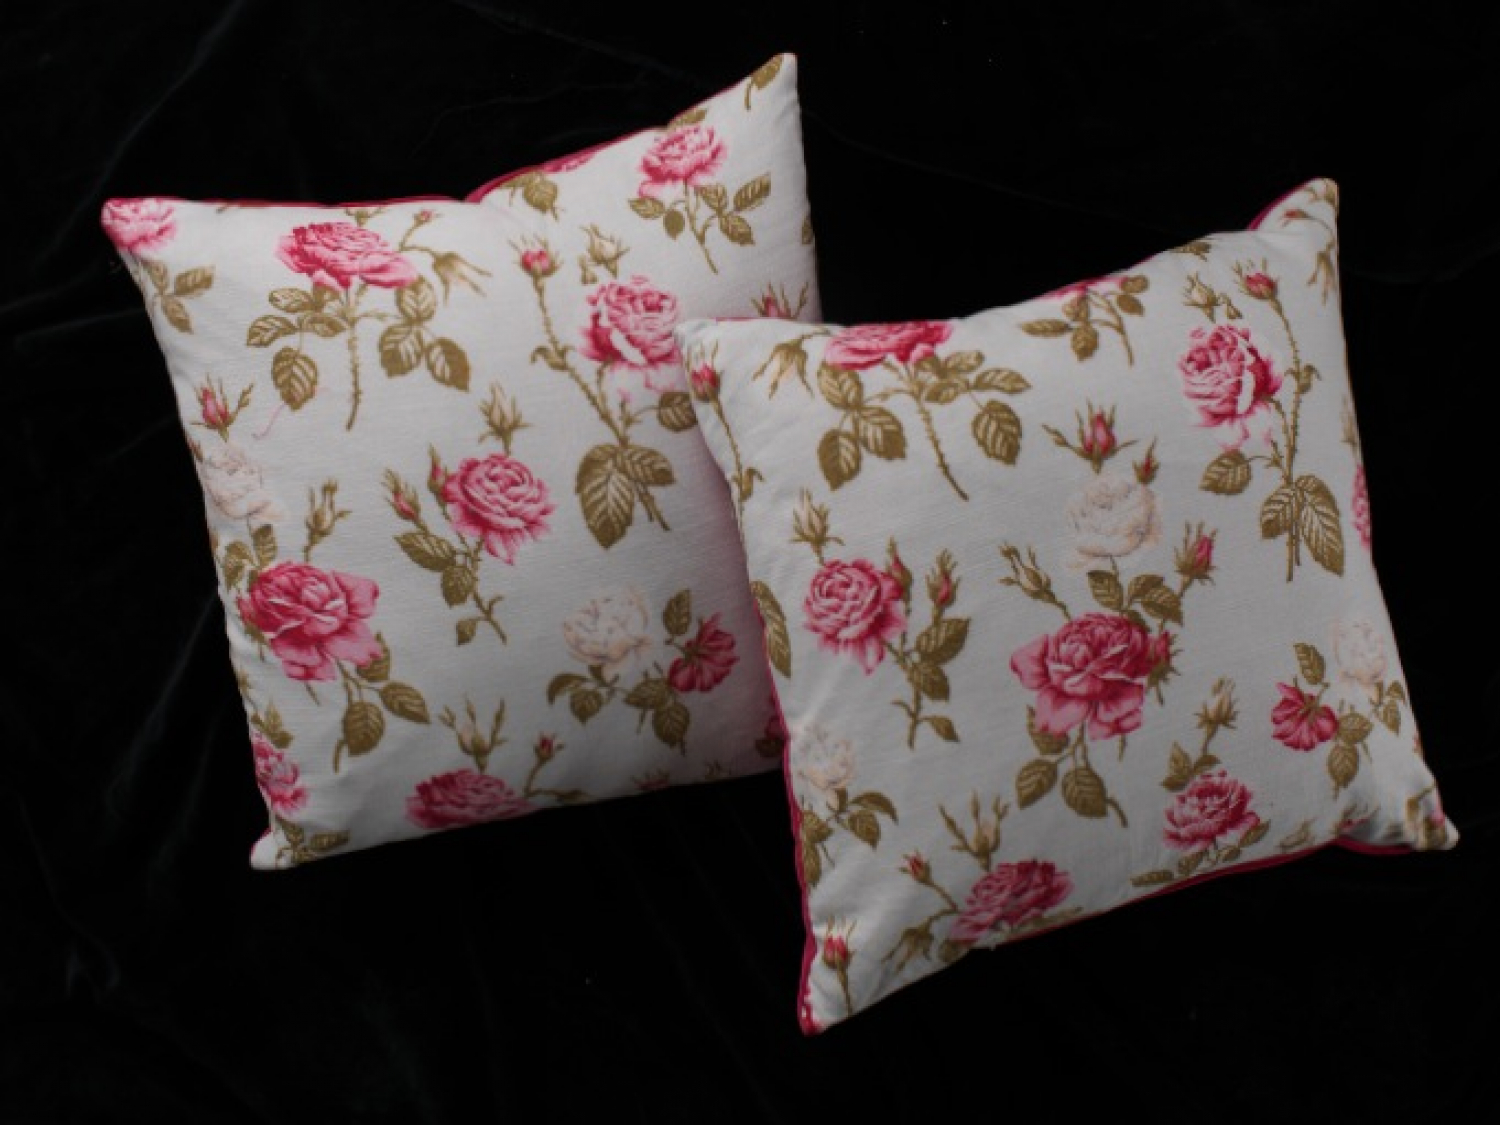 A pair of pink and white floral vintage cushions